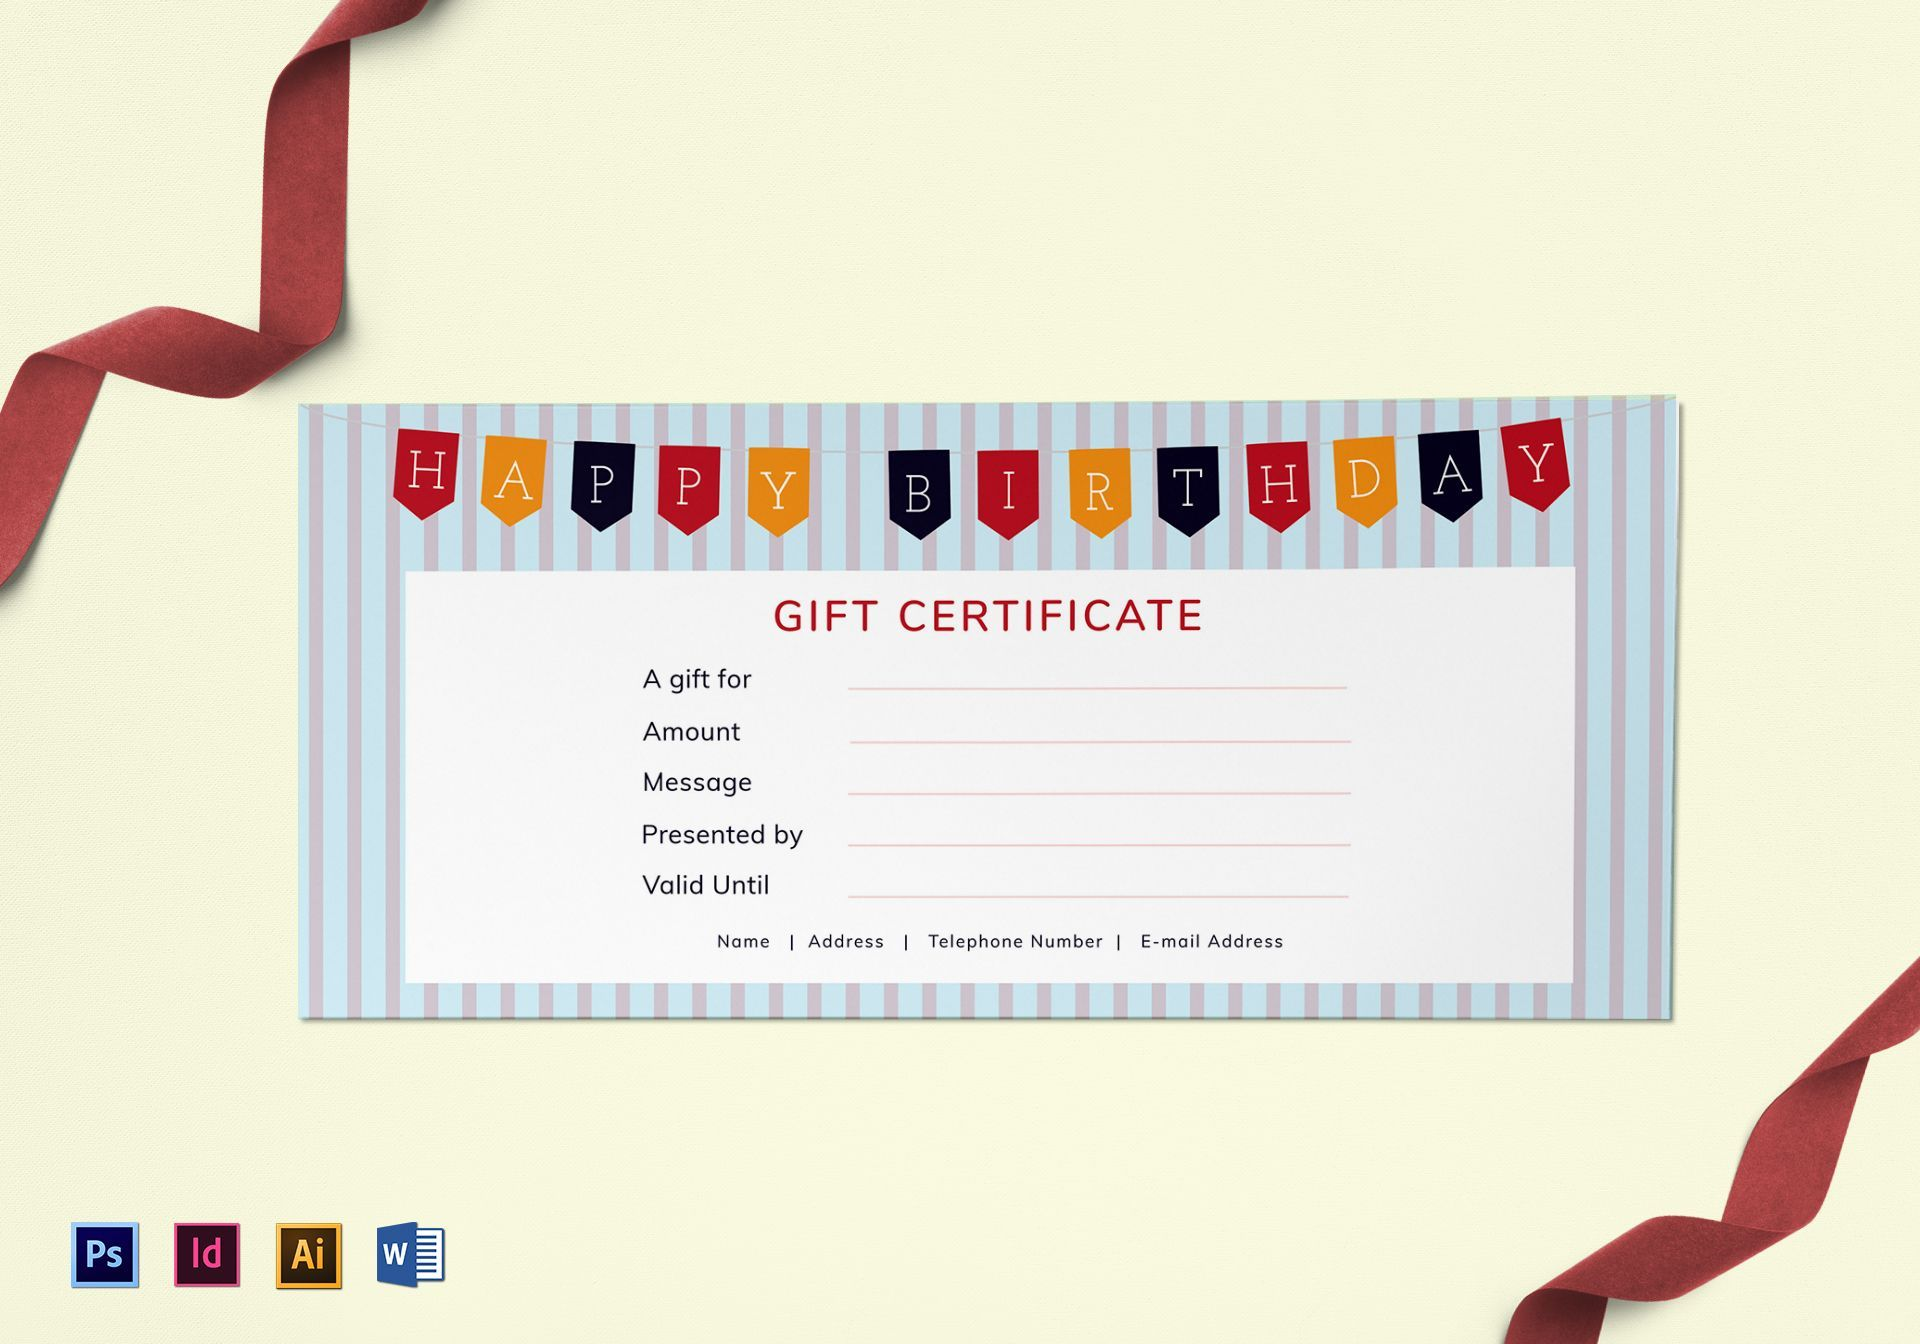 Happy Birthday Gift Certificate Template with Indesign